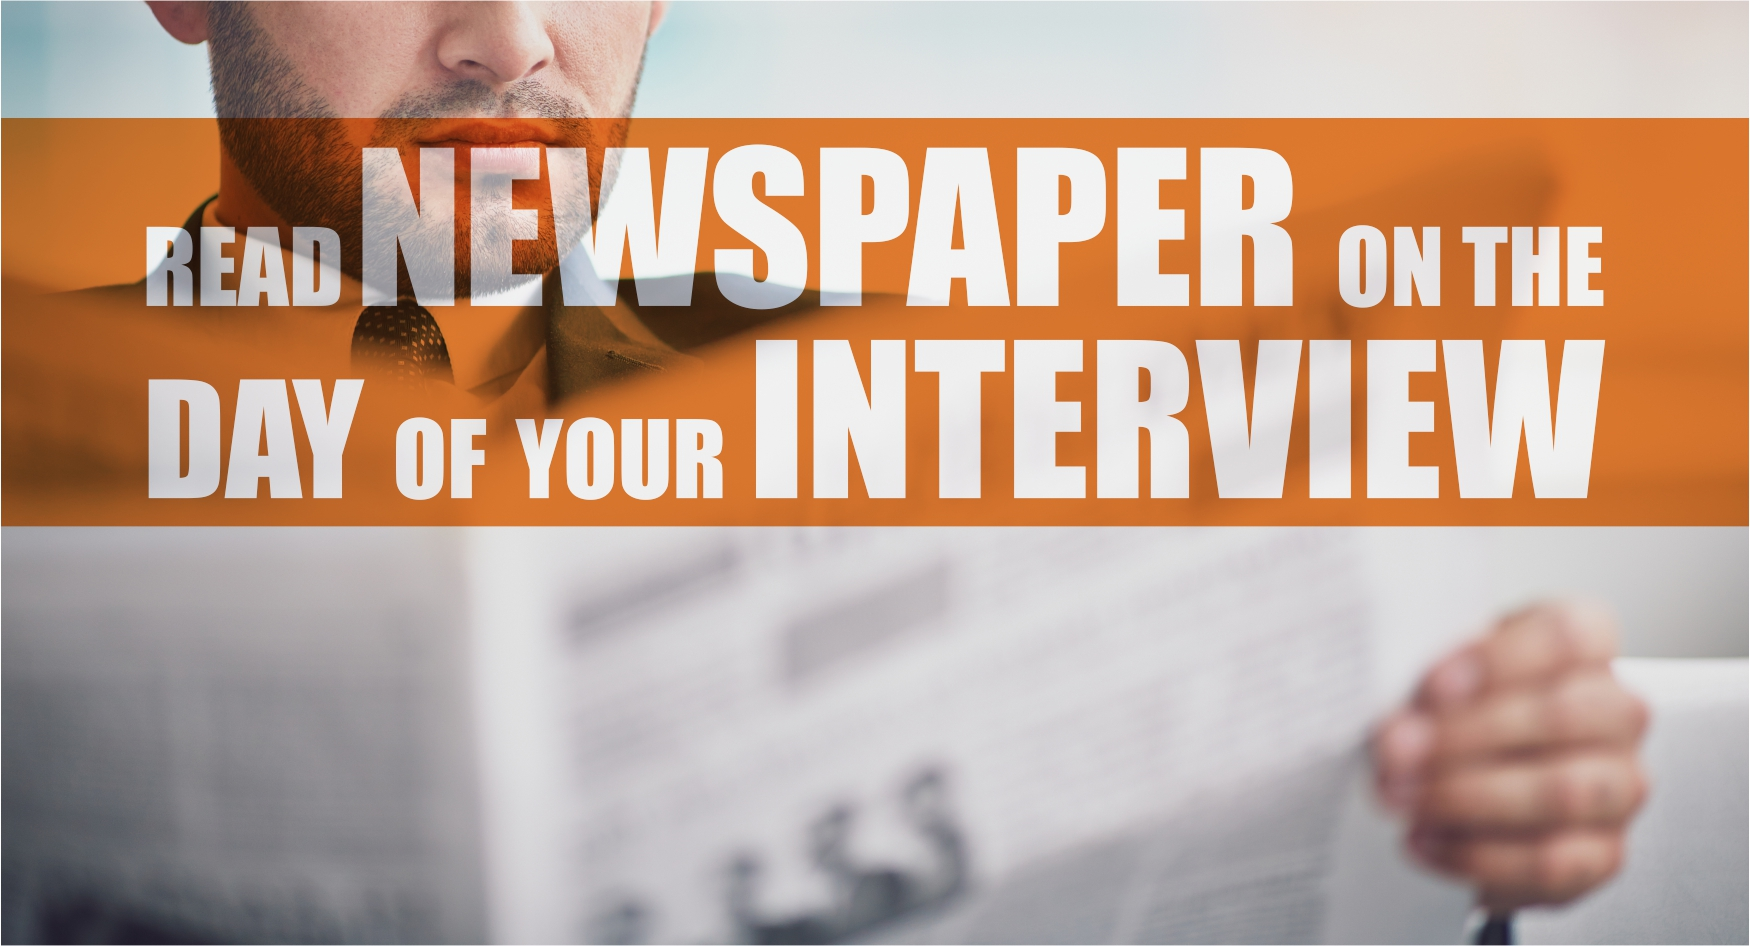 Read Newspaper on the Day of your Interview